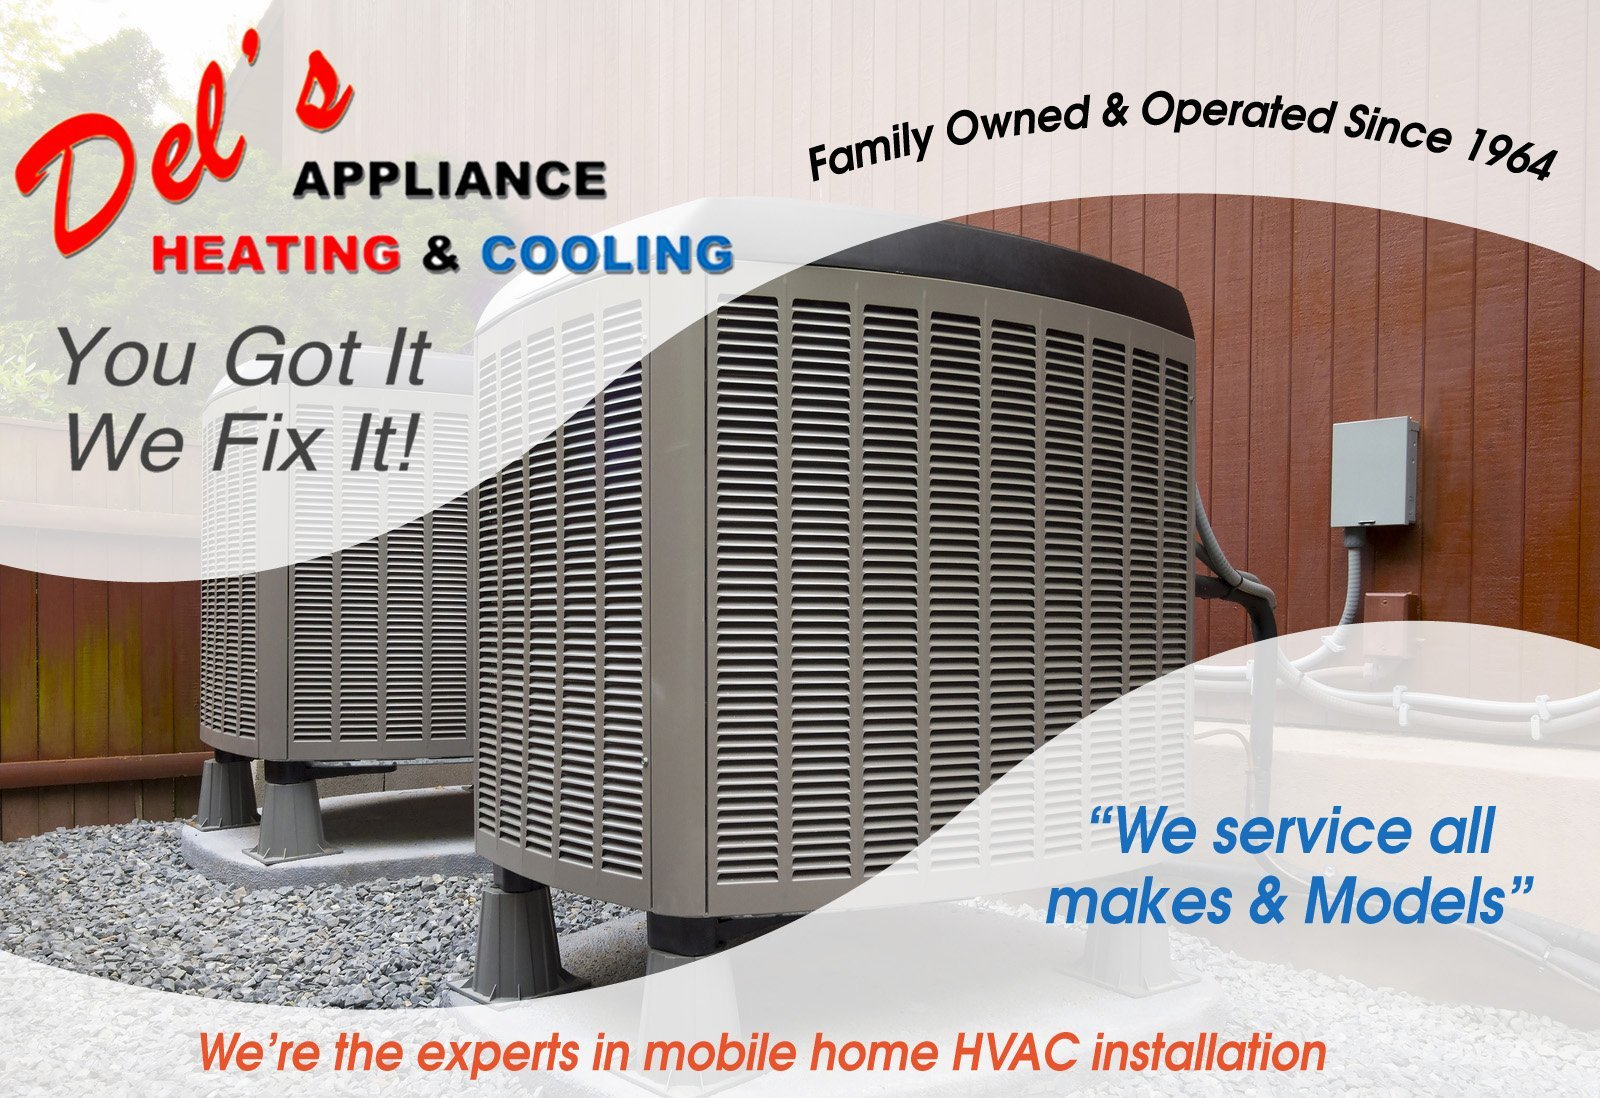 Del's Appliance Heating & Cooling